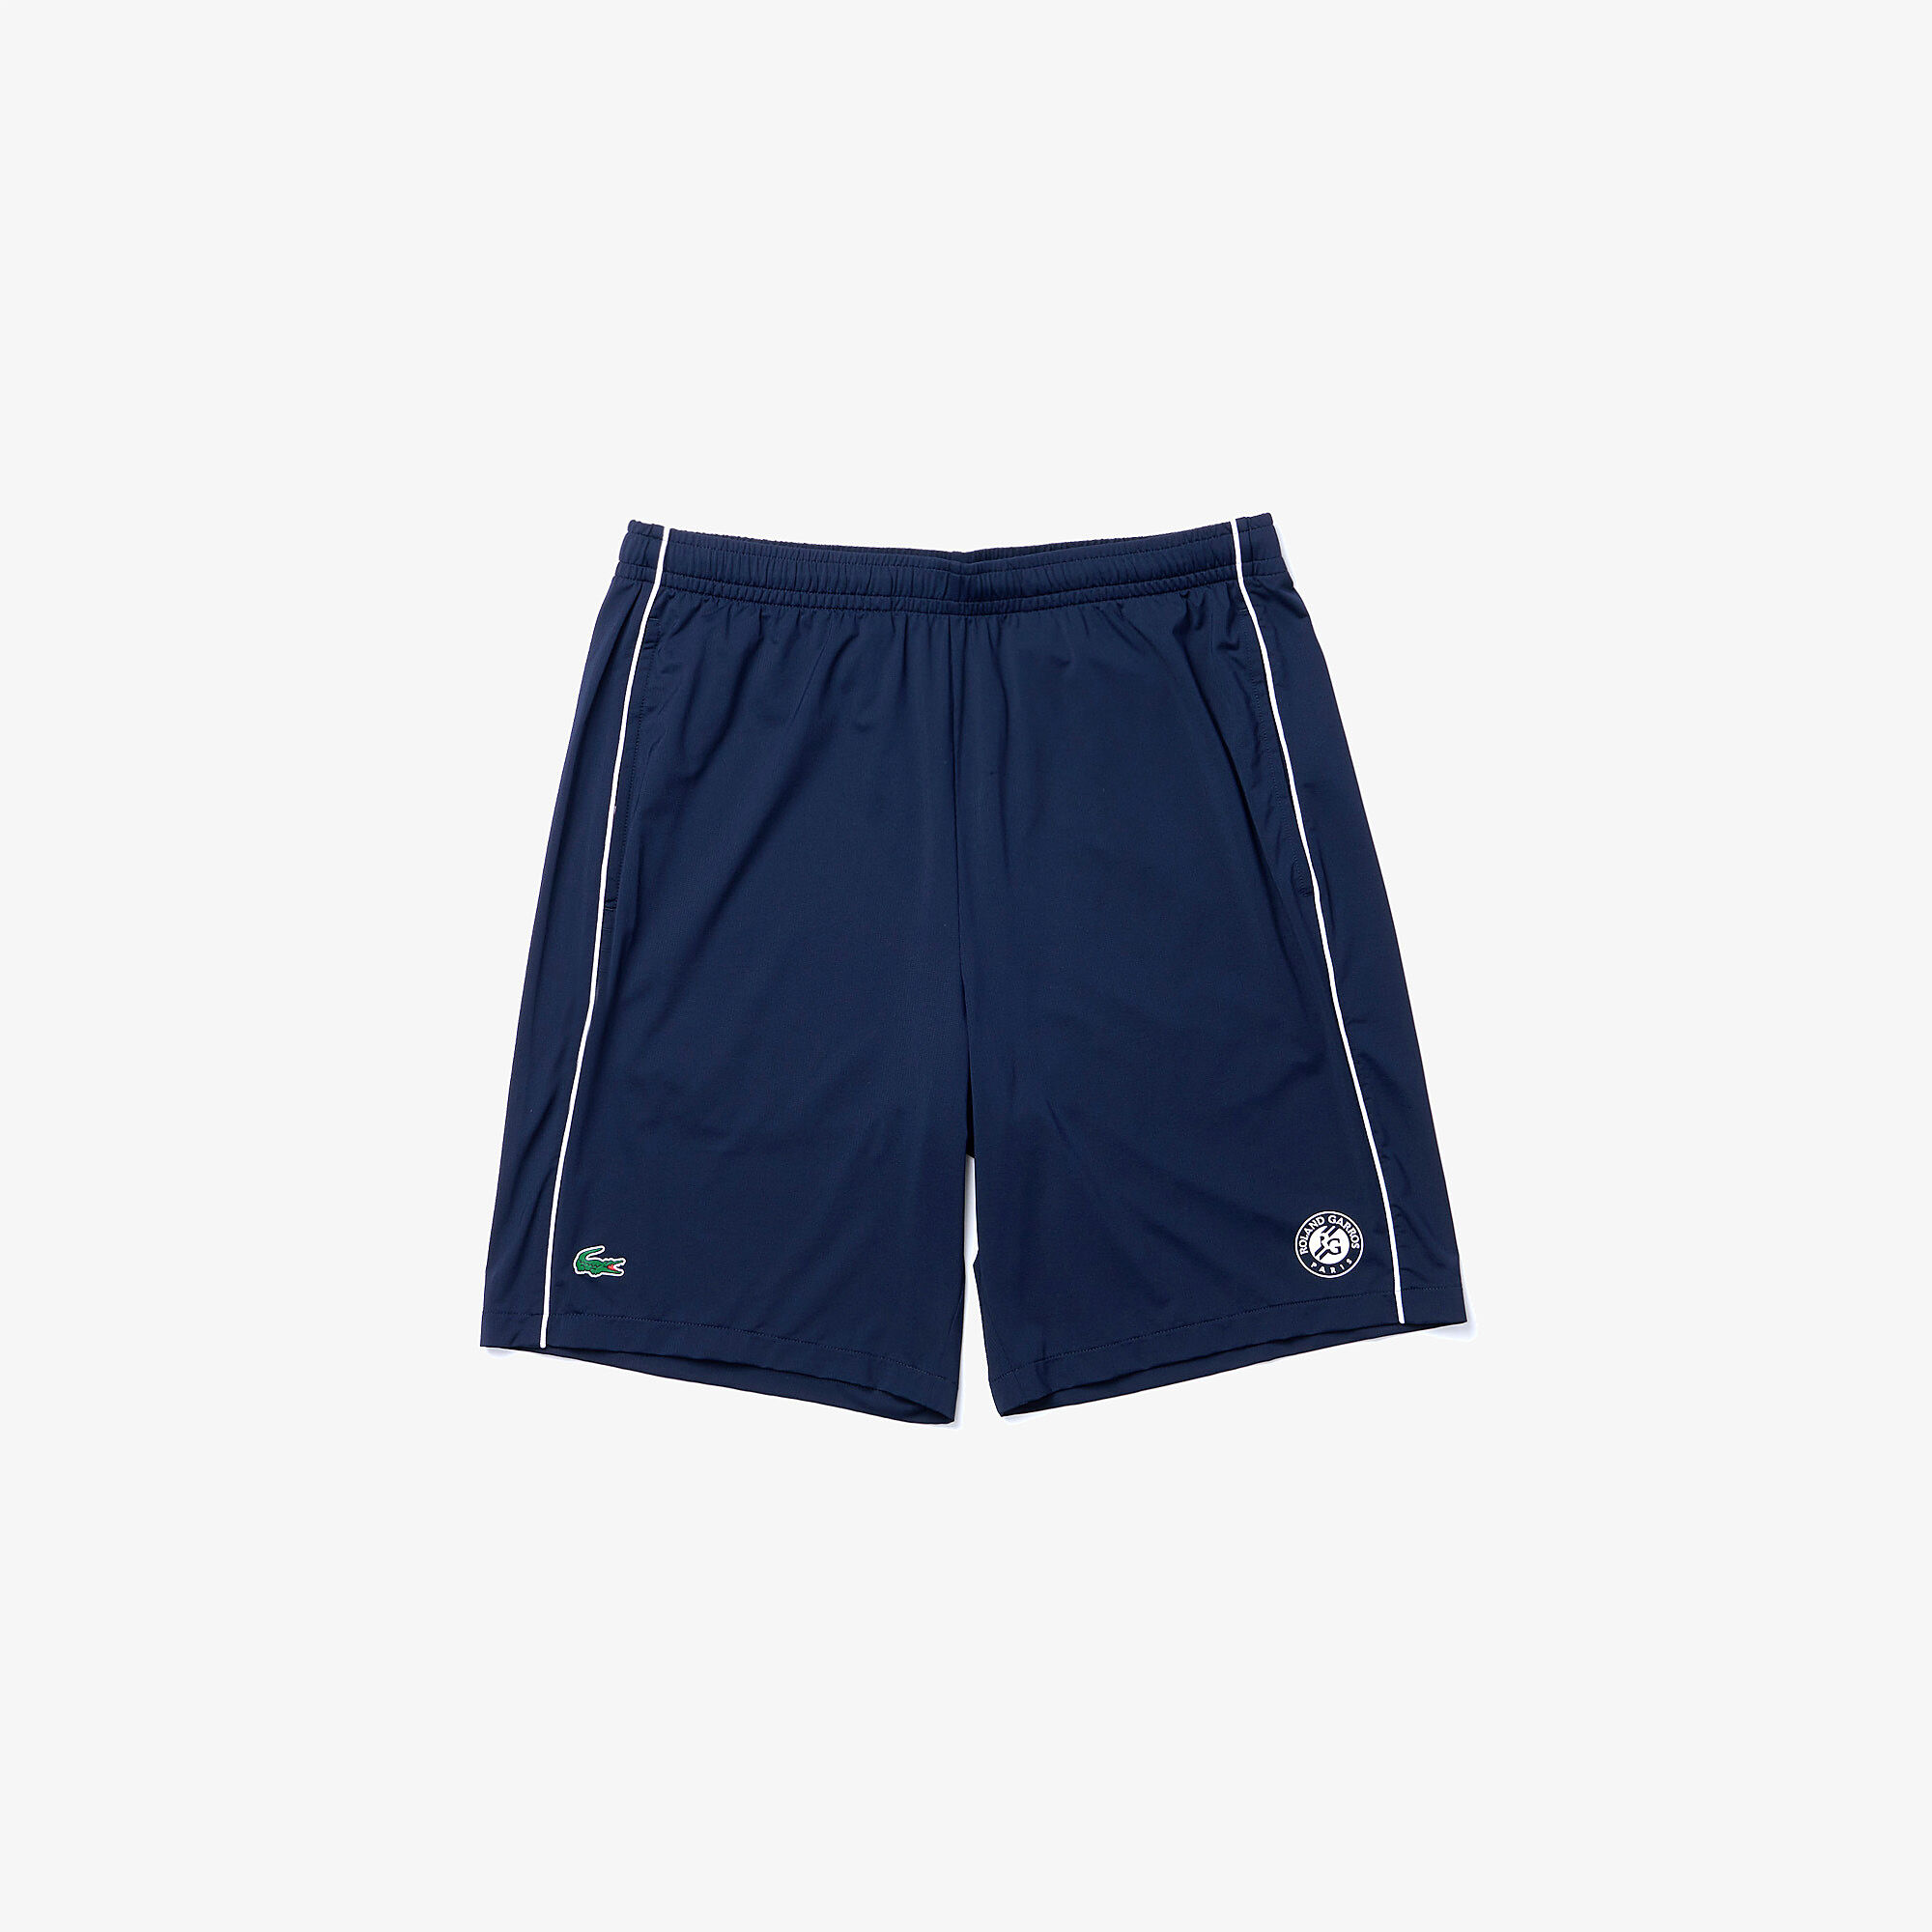 Men's Lacoste SPORT French Open Edition Lightweight Stretch Shorts